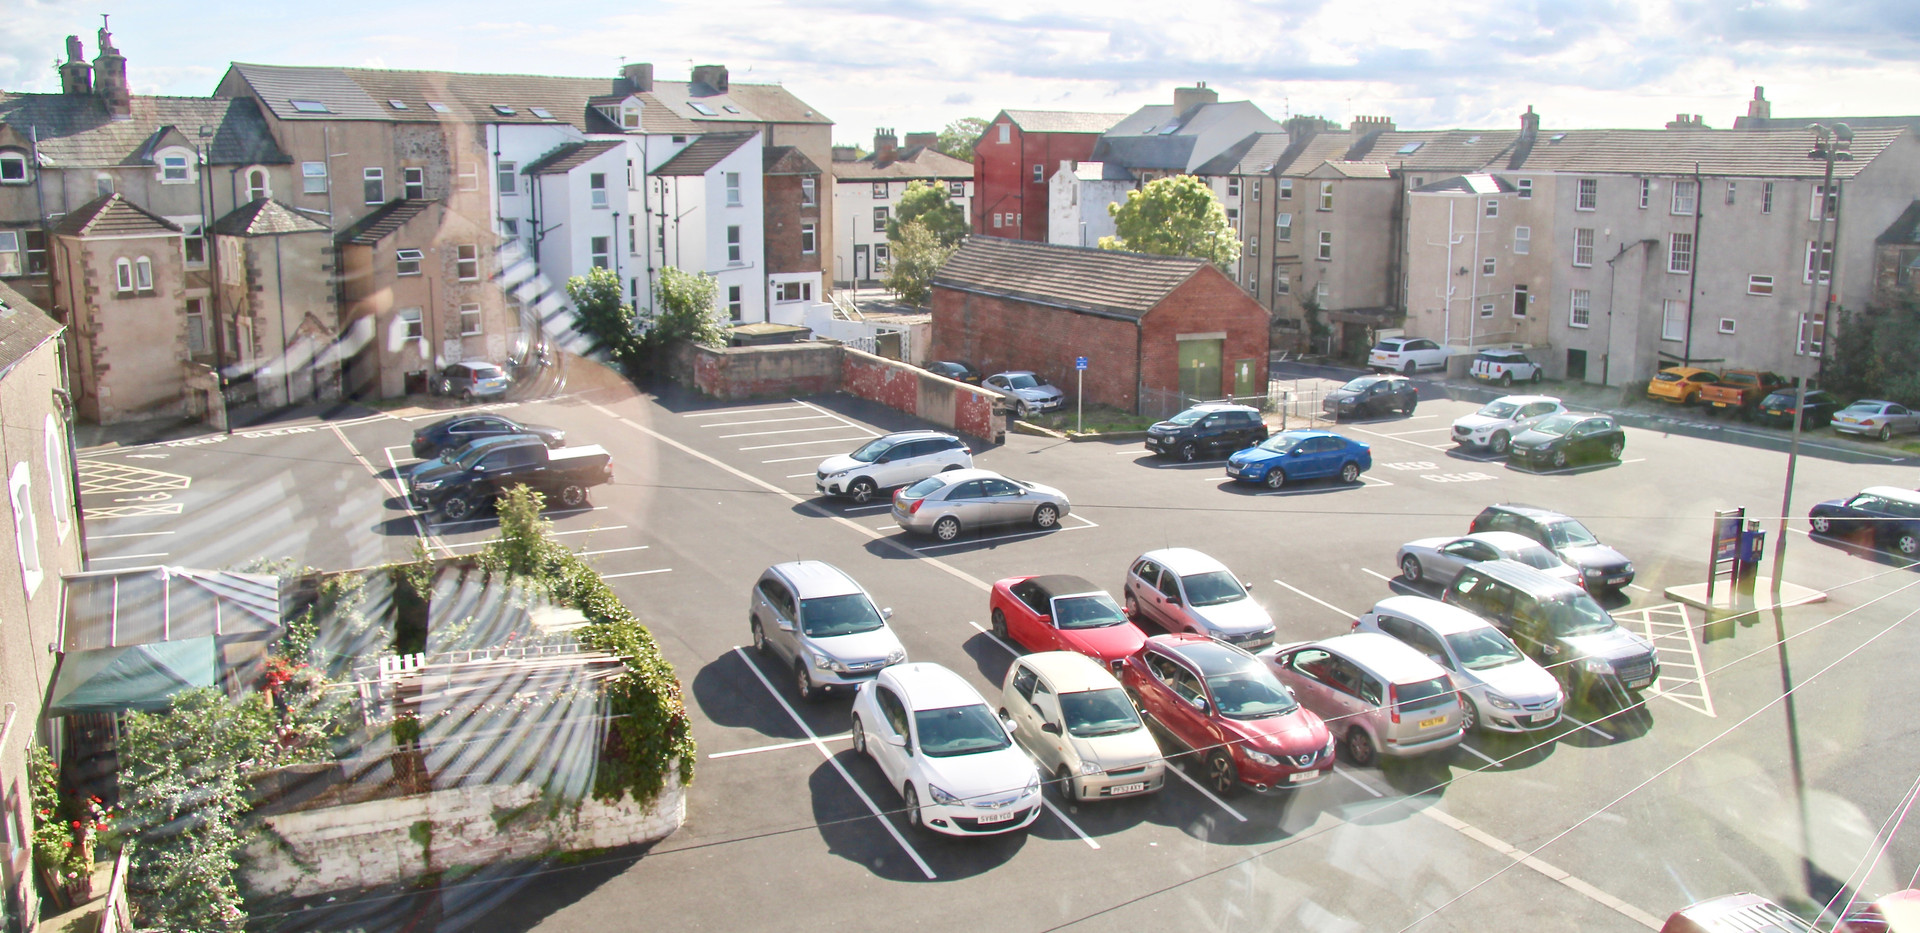 The Consutl Cetnre Morecambe Parking .jp